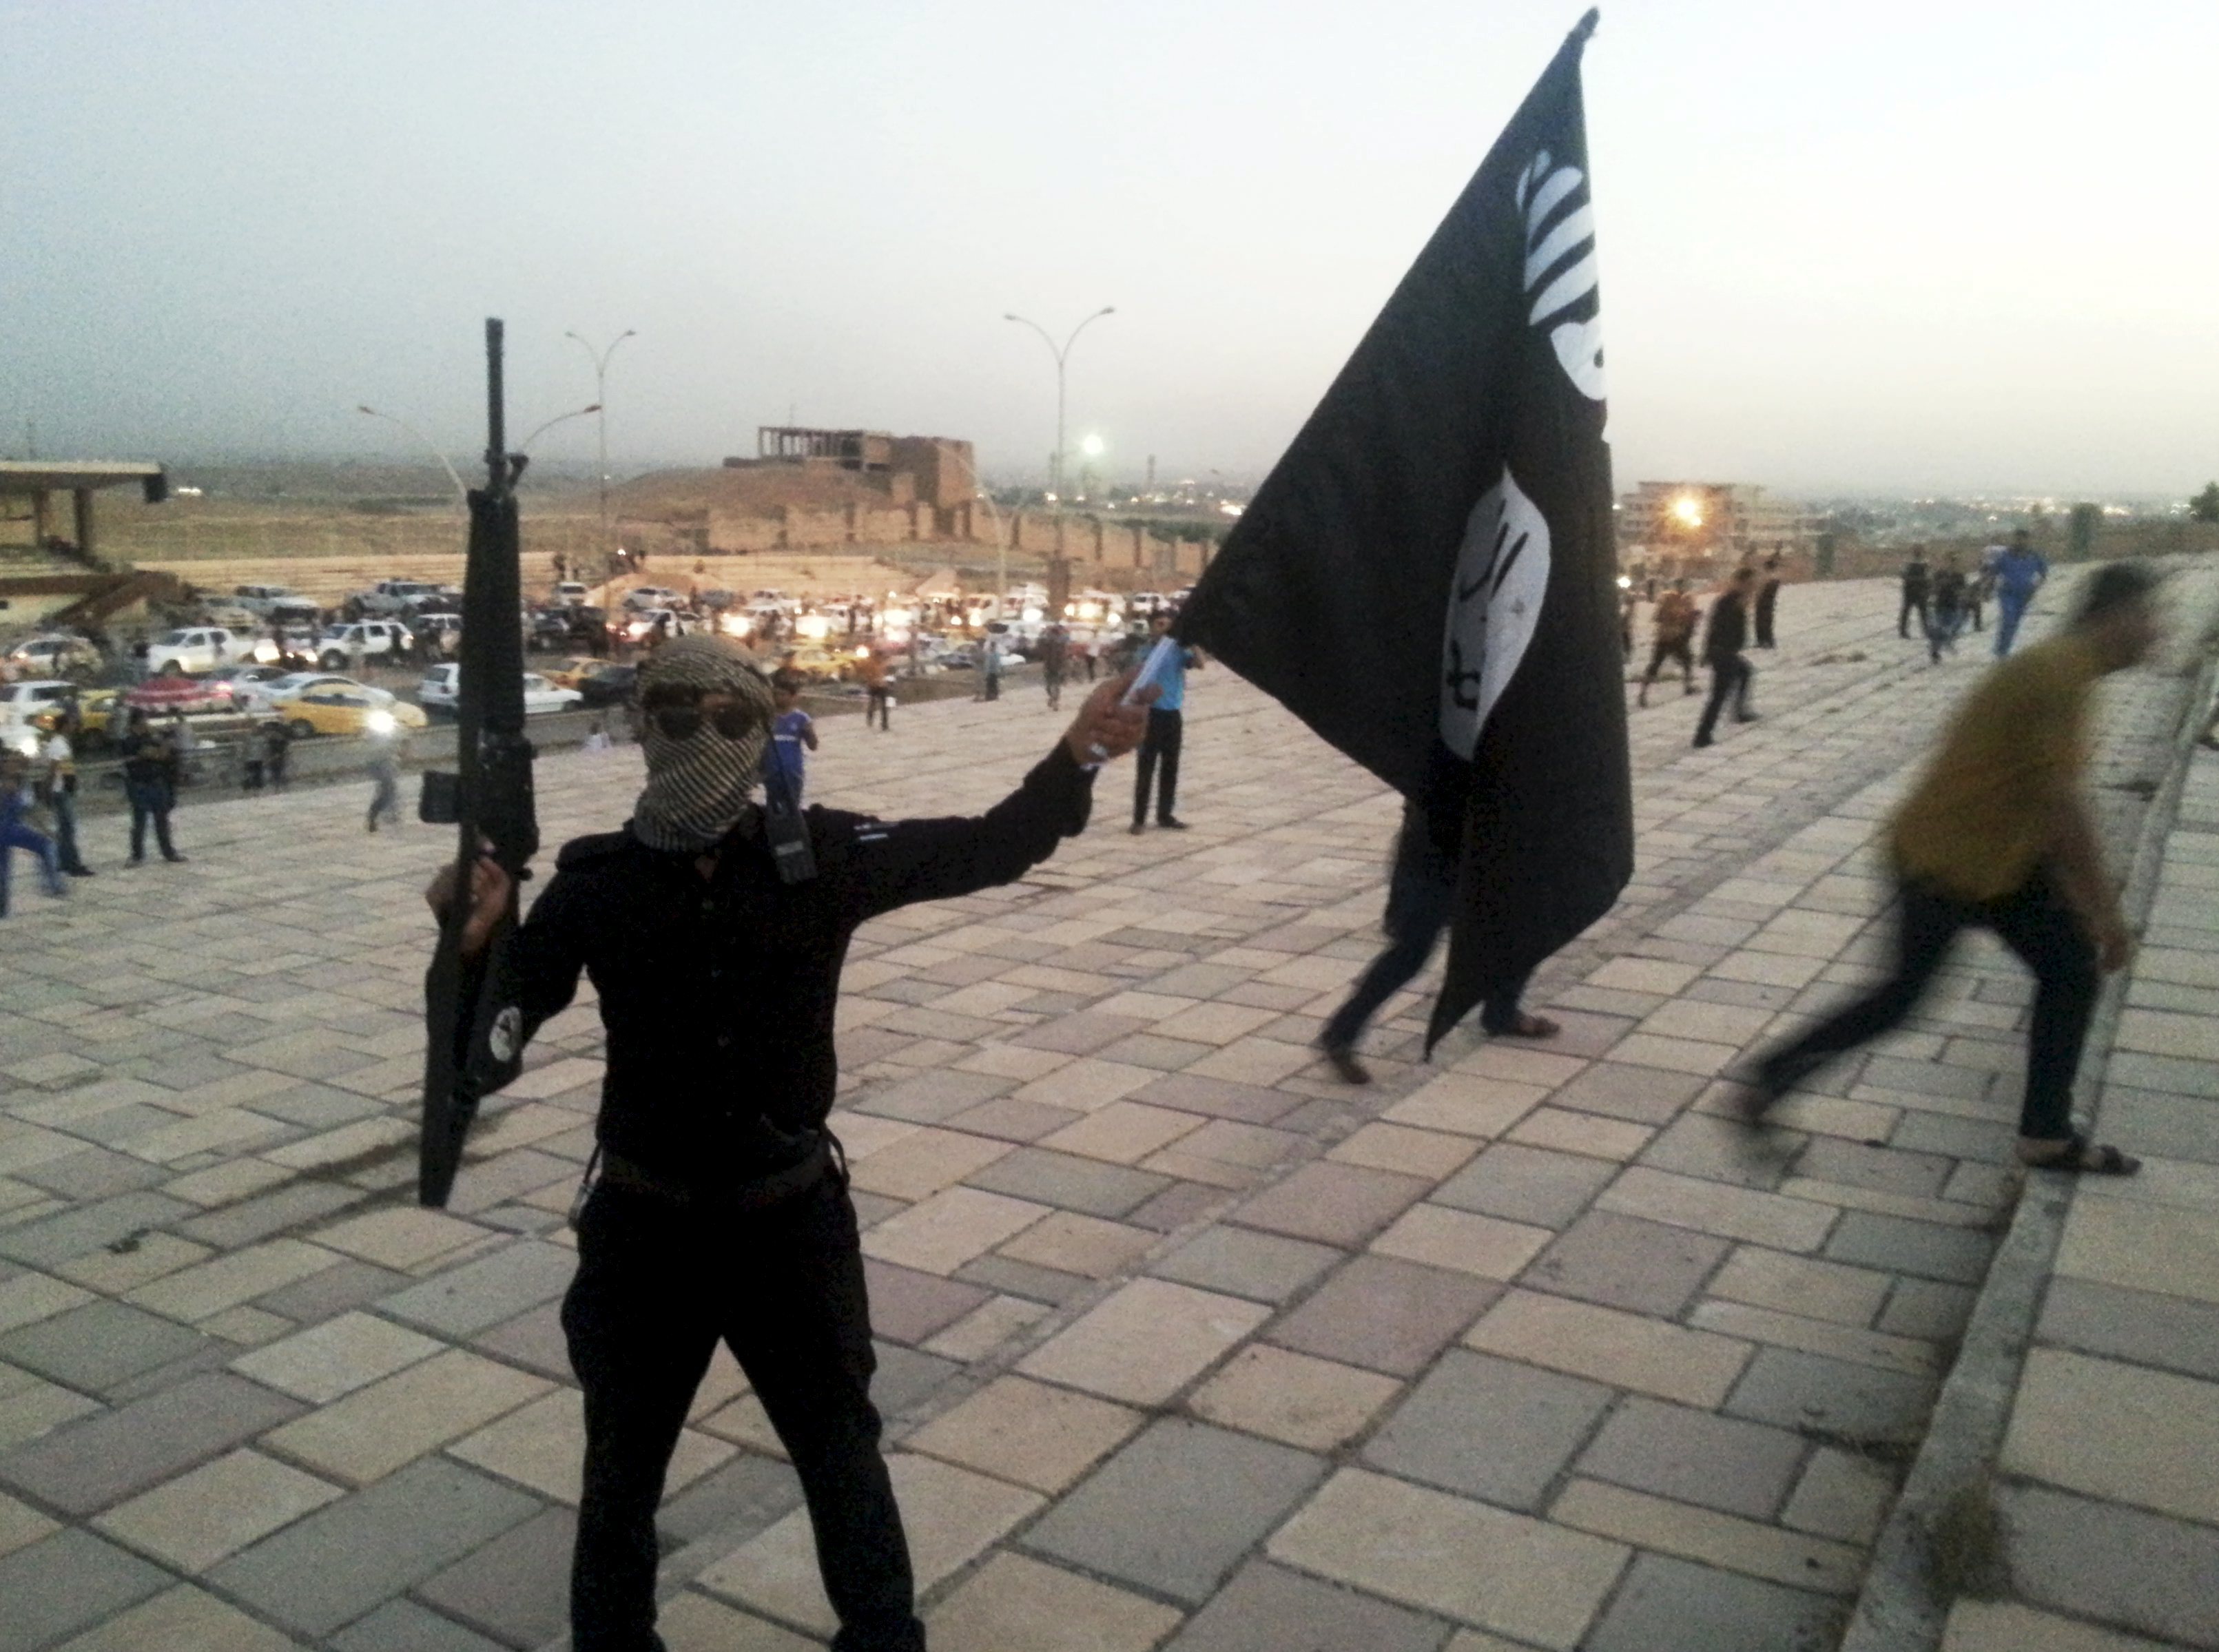 A fighter of the Islamic State of Iraq and the Levant (ISIL) holds an ISIL flag and a weapon on a street in the city of Mosul, Iraq, in this June 23, 2014 file photo. Photo: AP